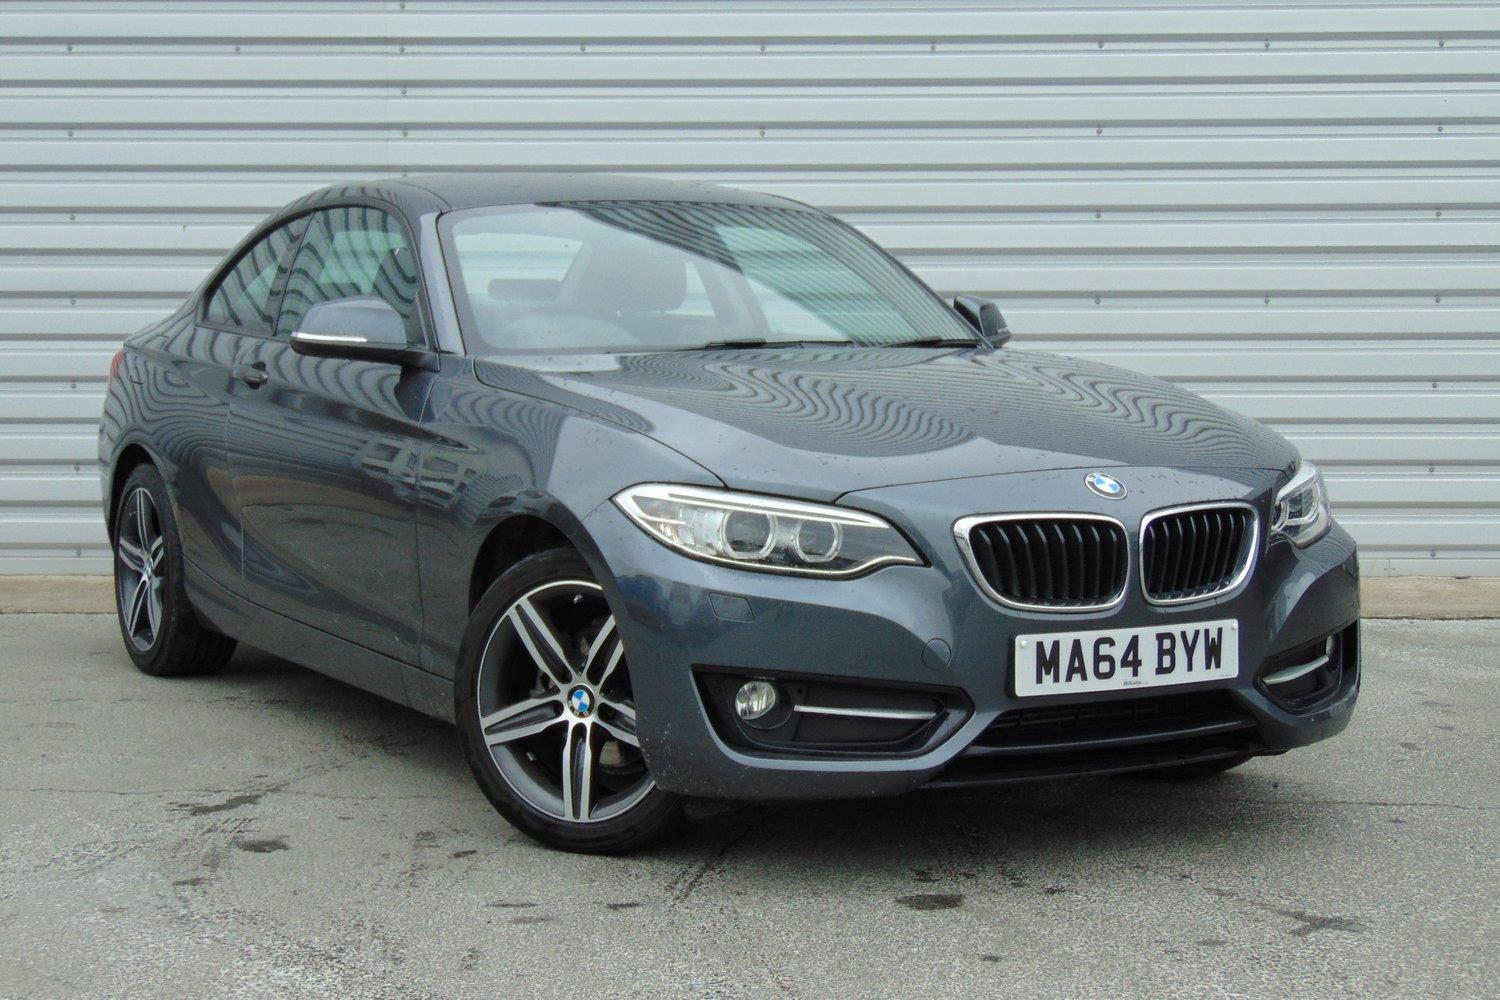 BMW 2 Series Coupé MA64BYW - Image 10